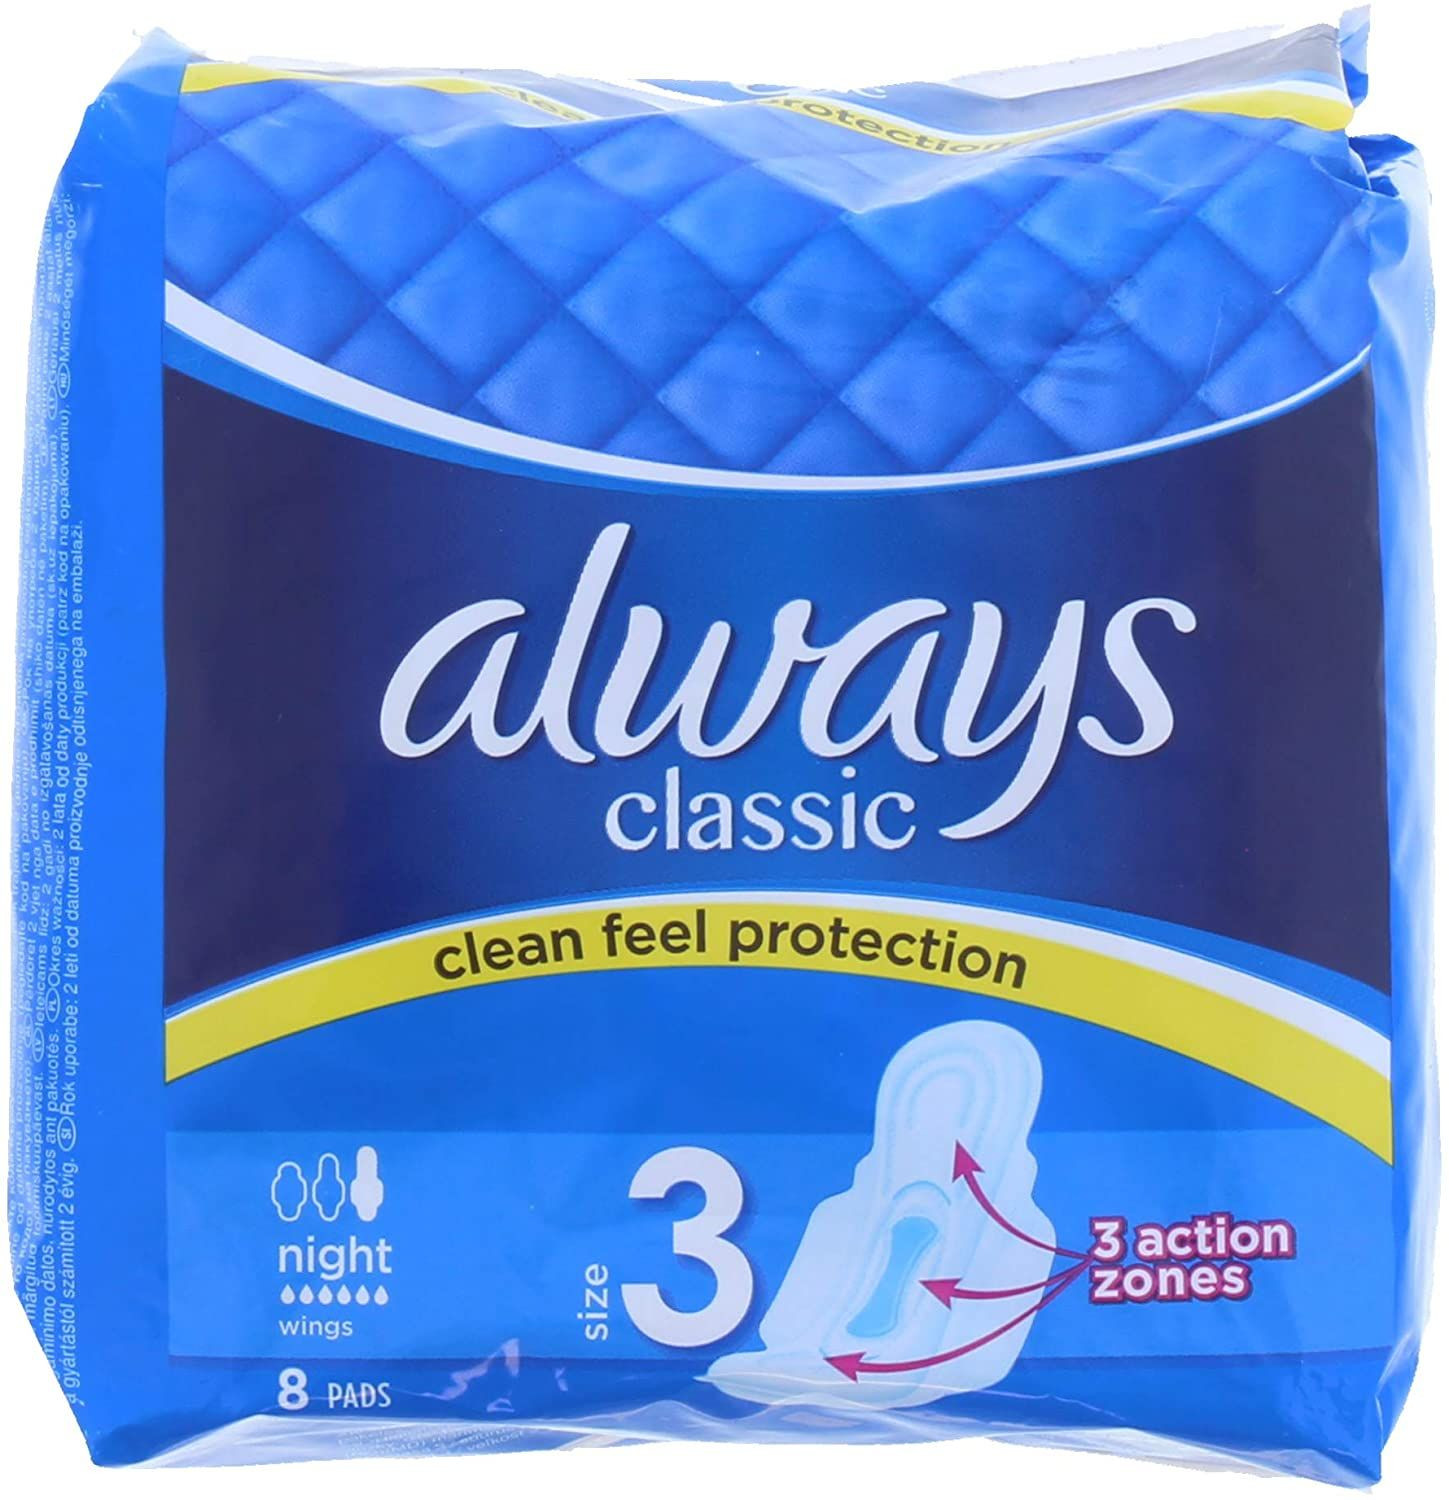 Always Classic 8 Nighttime Pads